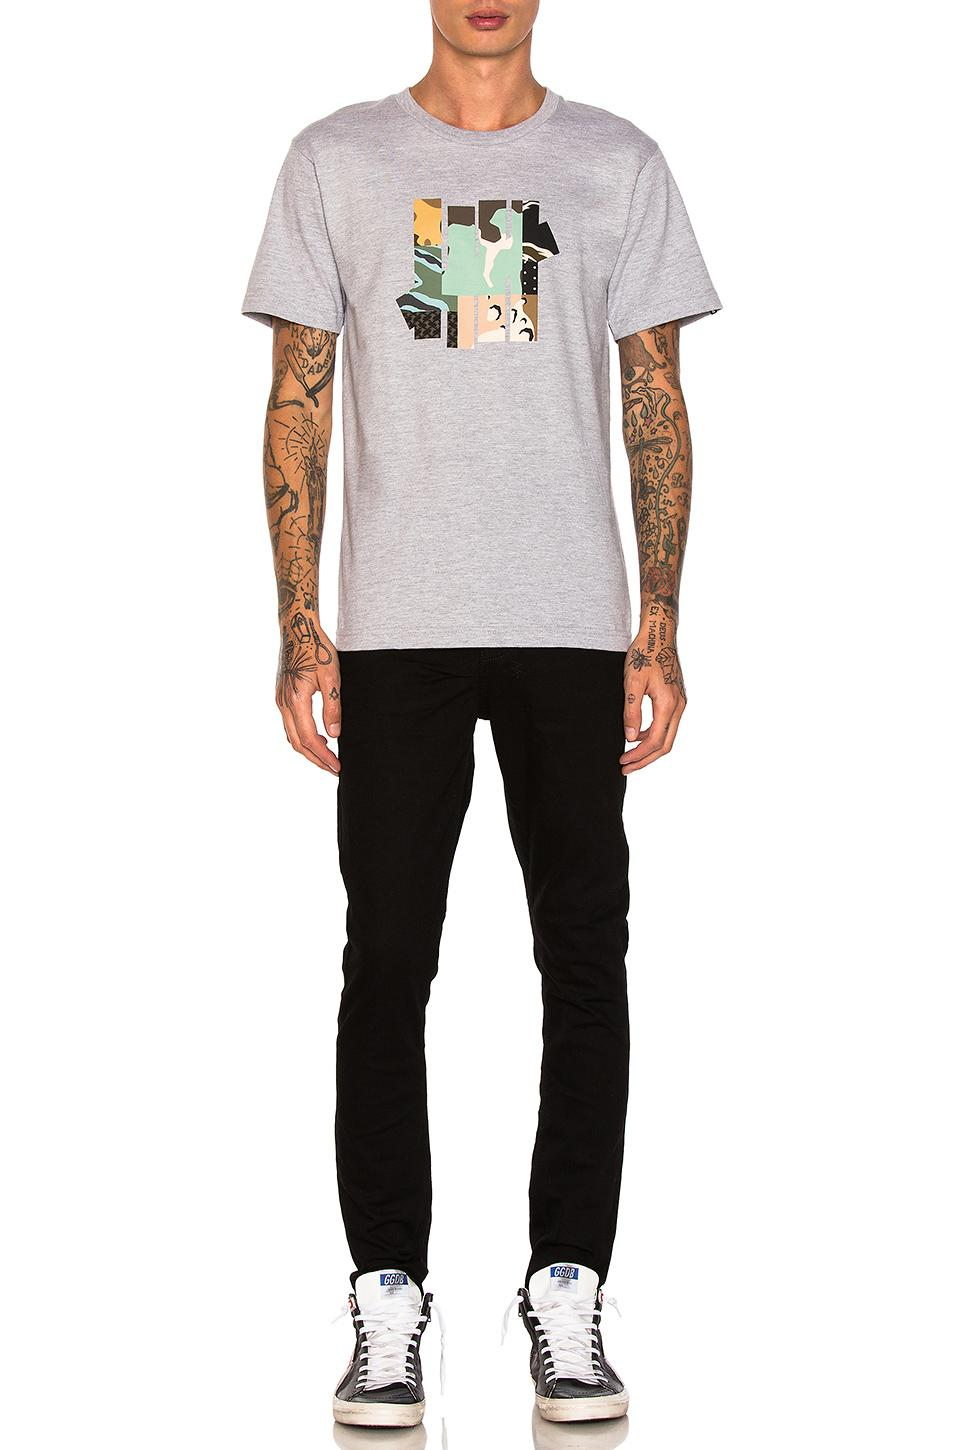 Undefeated Cotton Patchwork Strike Tee in Grey Heather (Grey) for Men